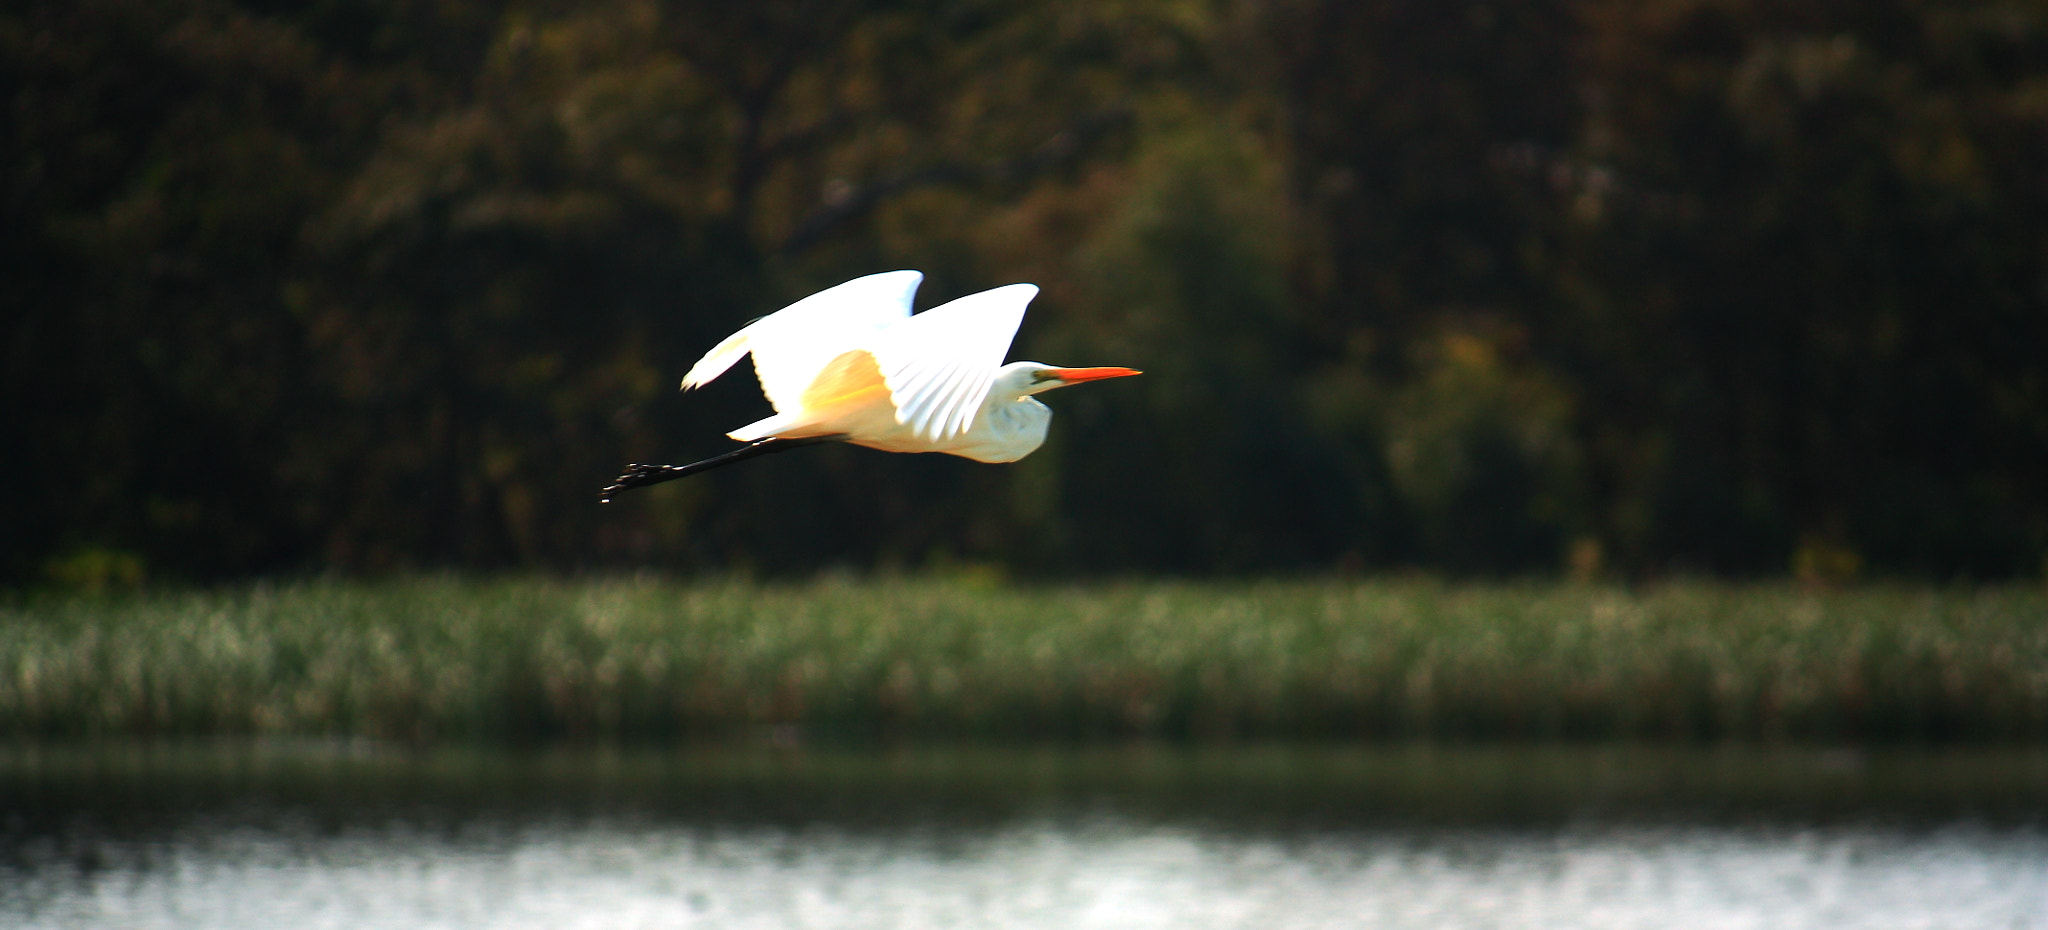 Photograph Flight of an Egret by Nicholas Dirnberger on 500px